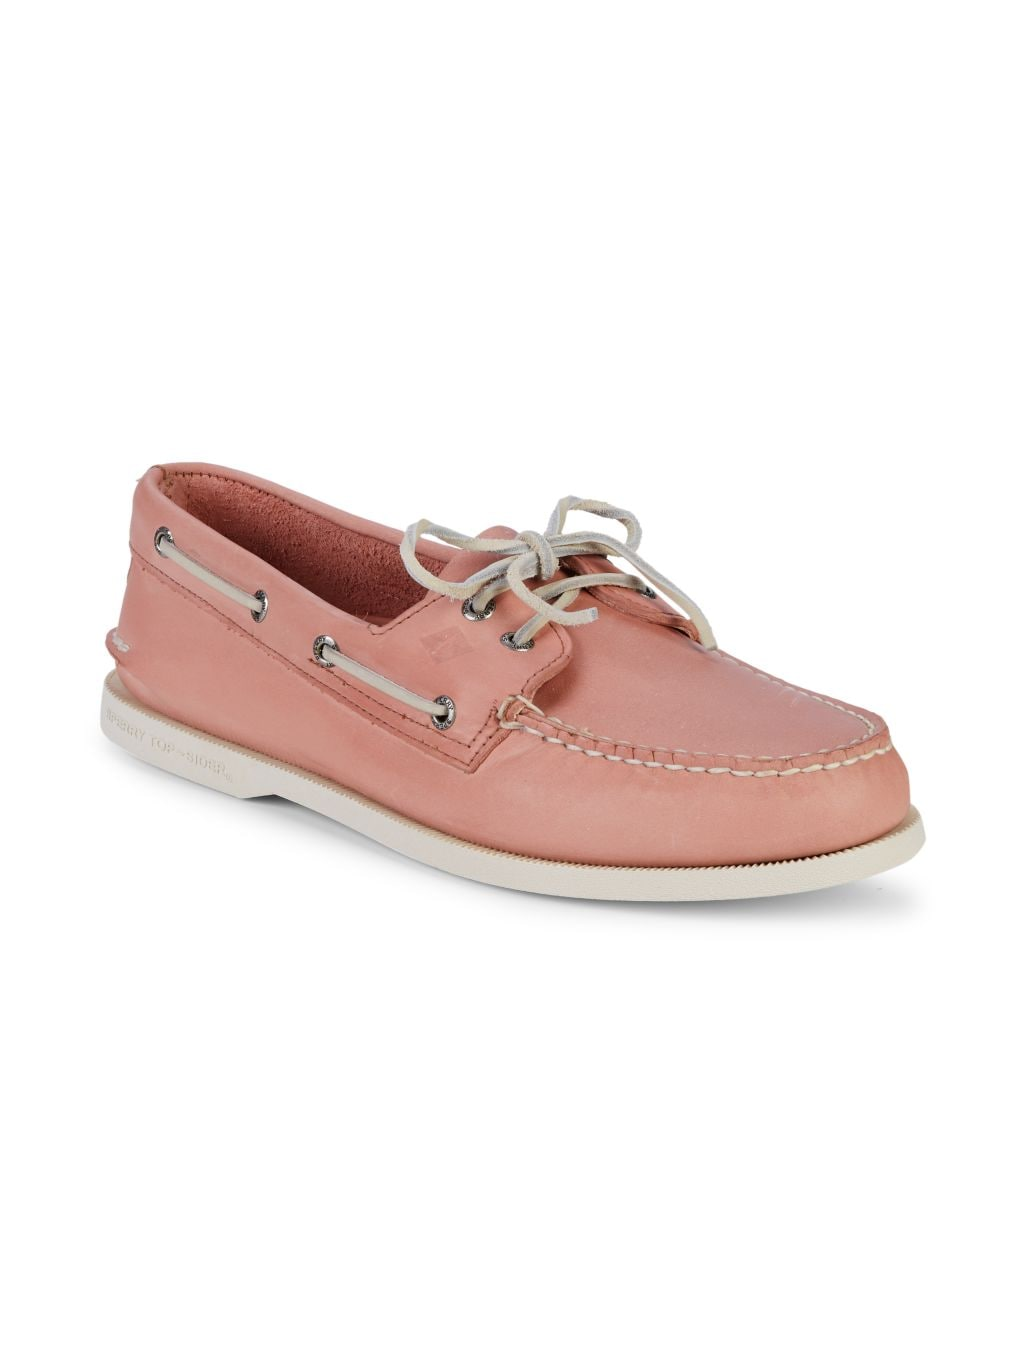 Sperry Authentic Original 2-Eye Leather Boat Shoes